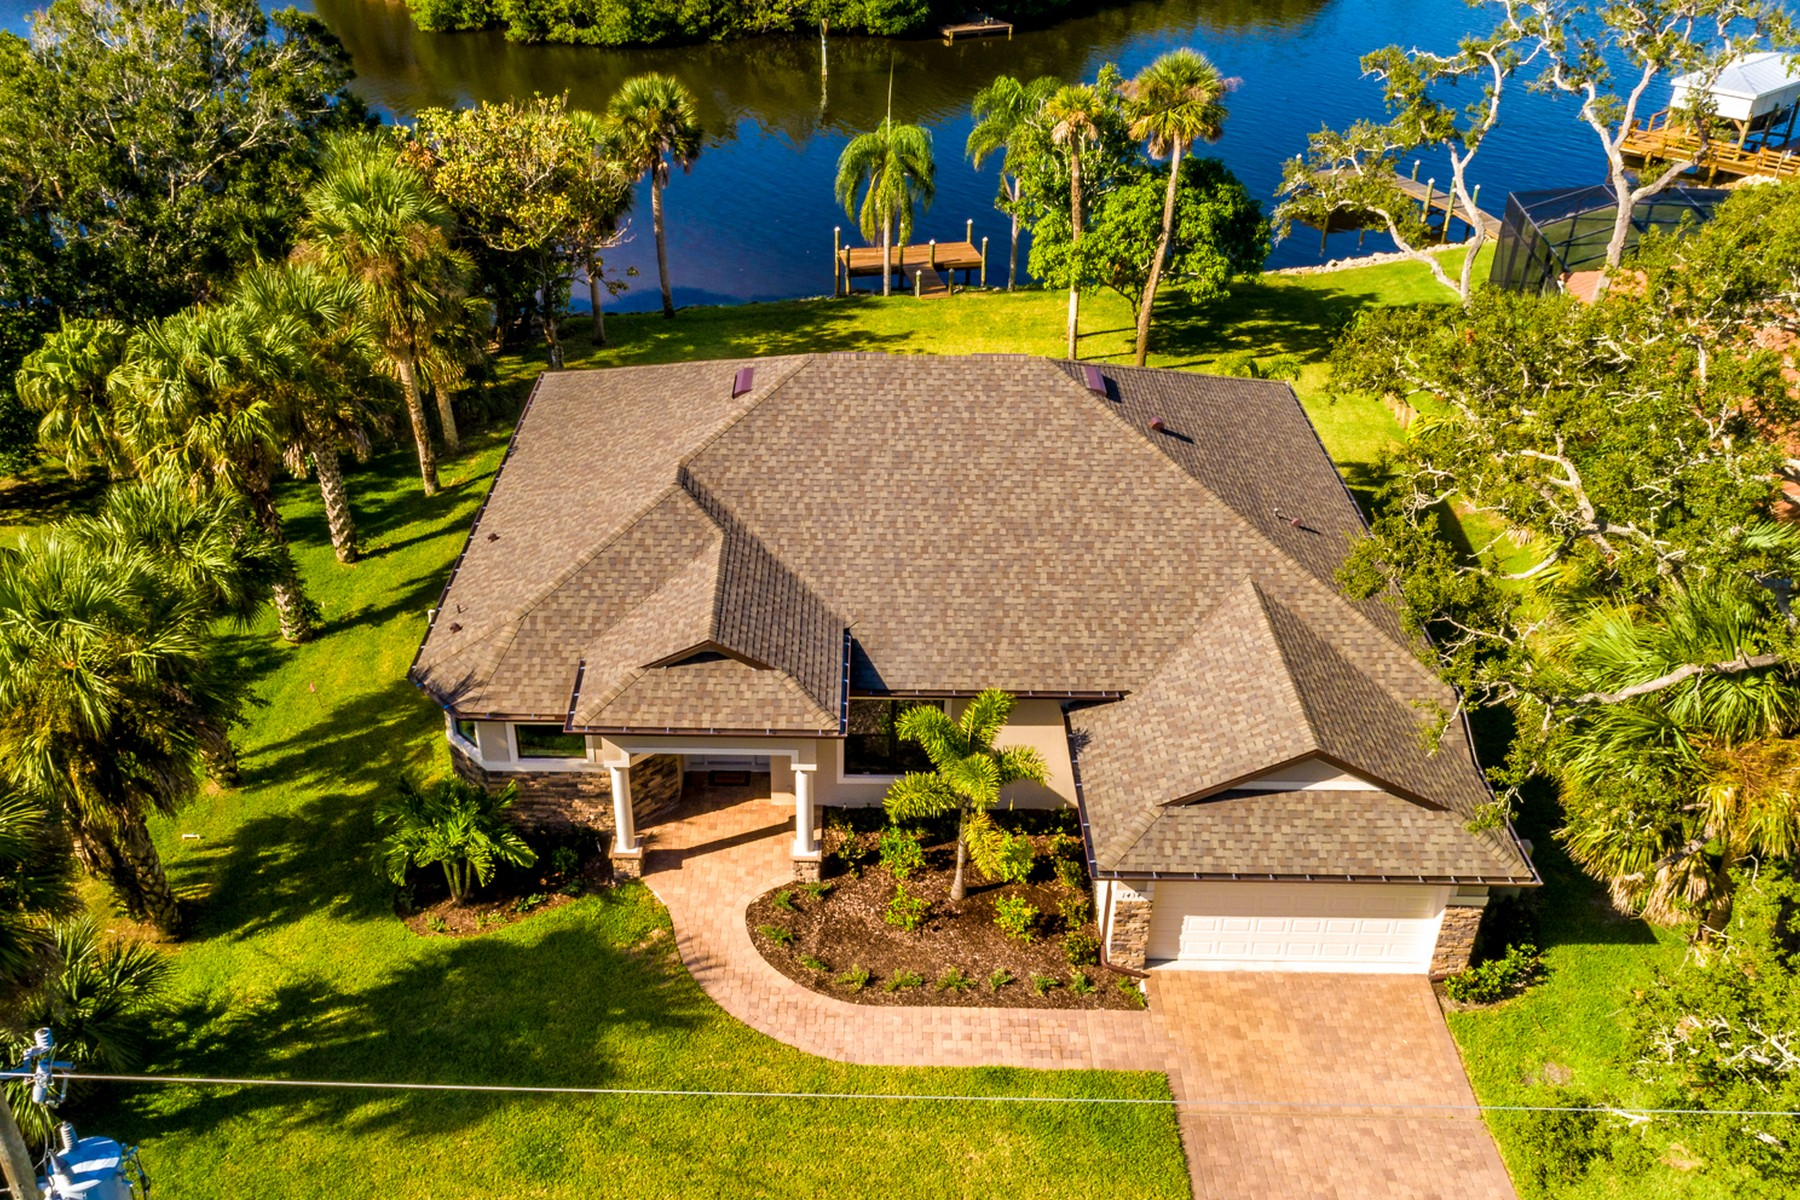 Brand New Waterfront Home in Palm Bay Point 1434 Herndon Circle NE Palm Bay, Florida 32905 Amerika Birleşik Devletleri